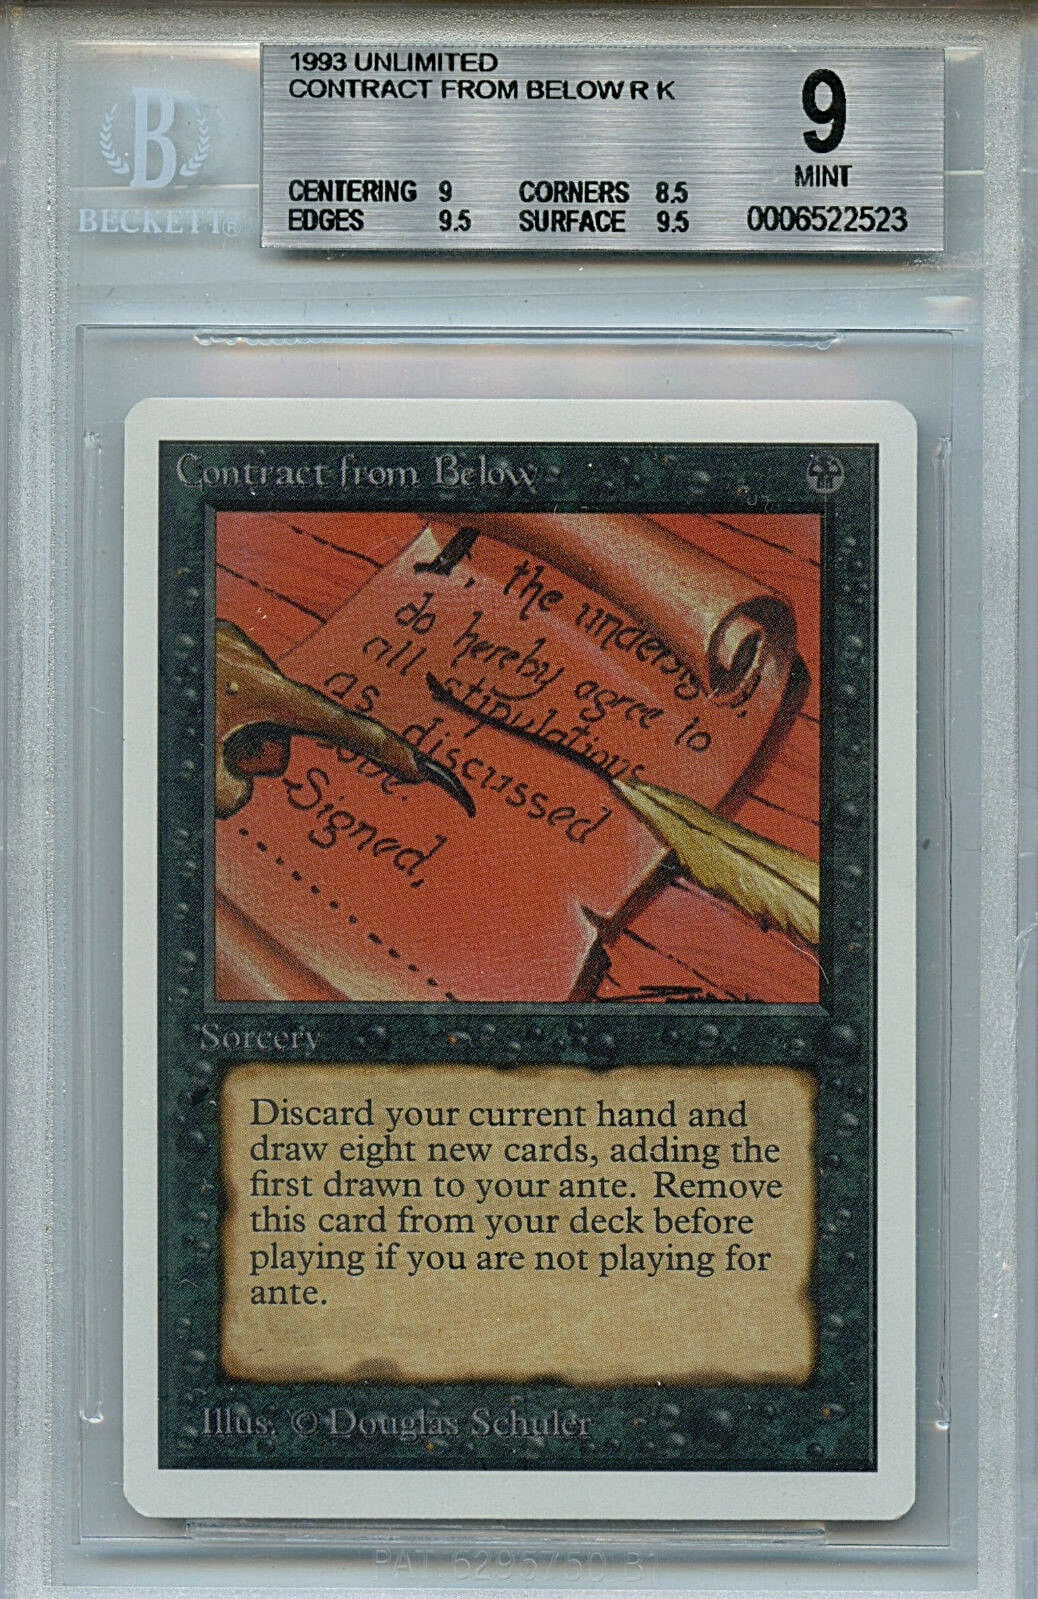 MTG Unlimited Unlimited Unlimited Contract From Below BGS 9.0 (9) Mint Card WOTC 2523 535404